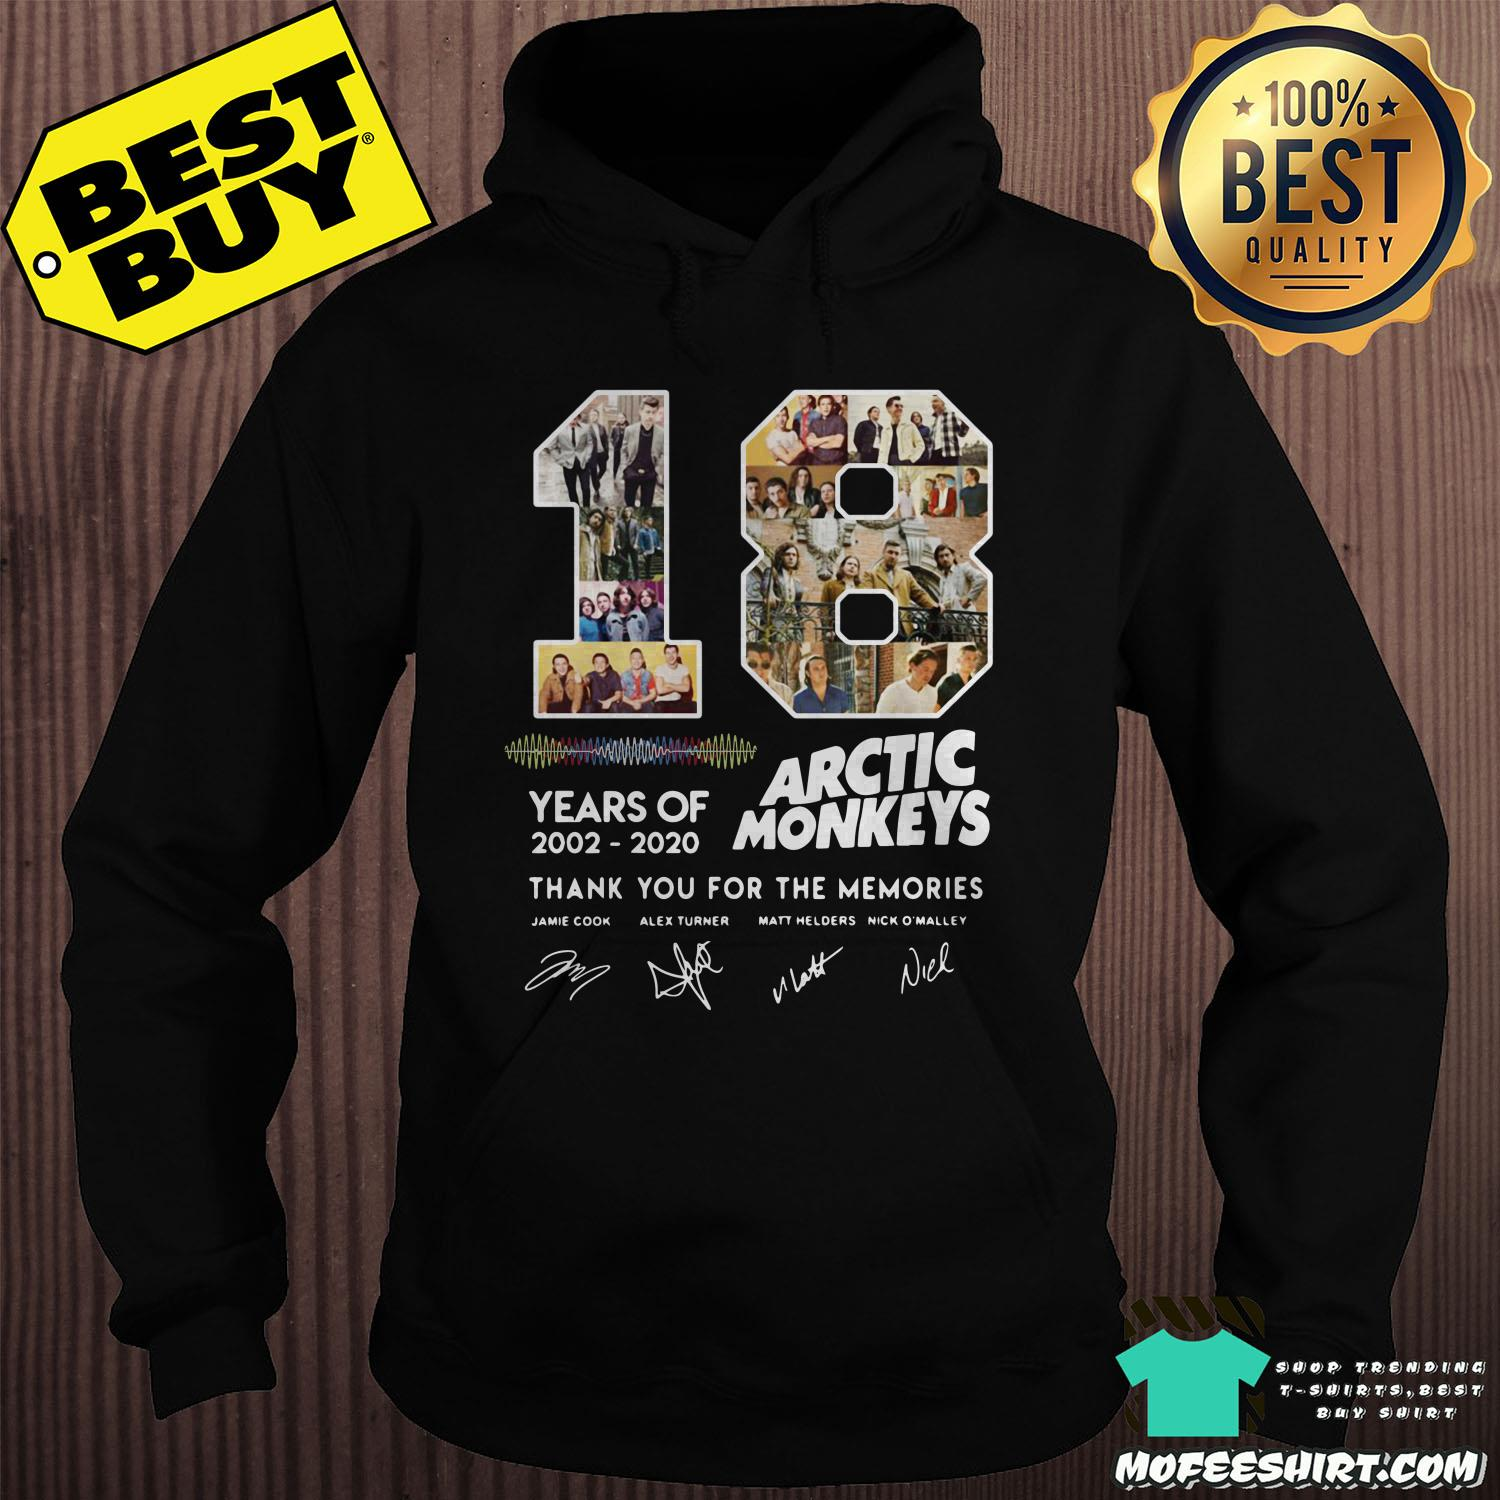 18 years of 2002 2020 arctic monkeys thank you for the memories signature hoodie - 18 Years Of 2002 - 2020 Arctic Monkeys Thank You For The Memories Signature Shirt